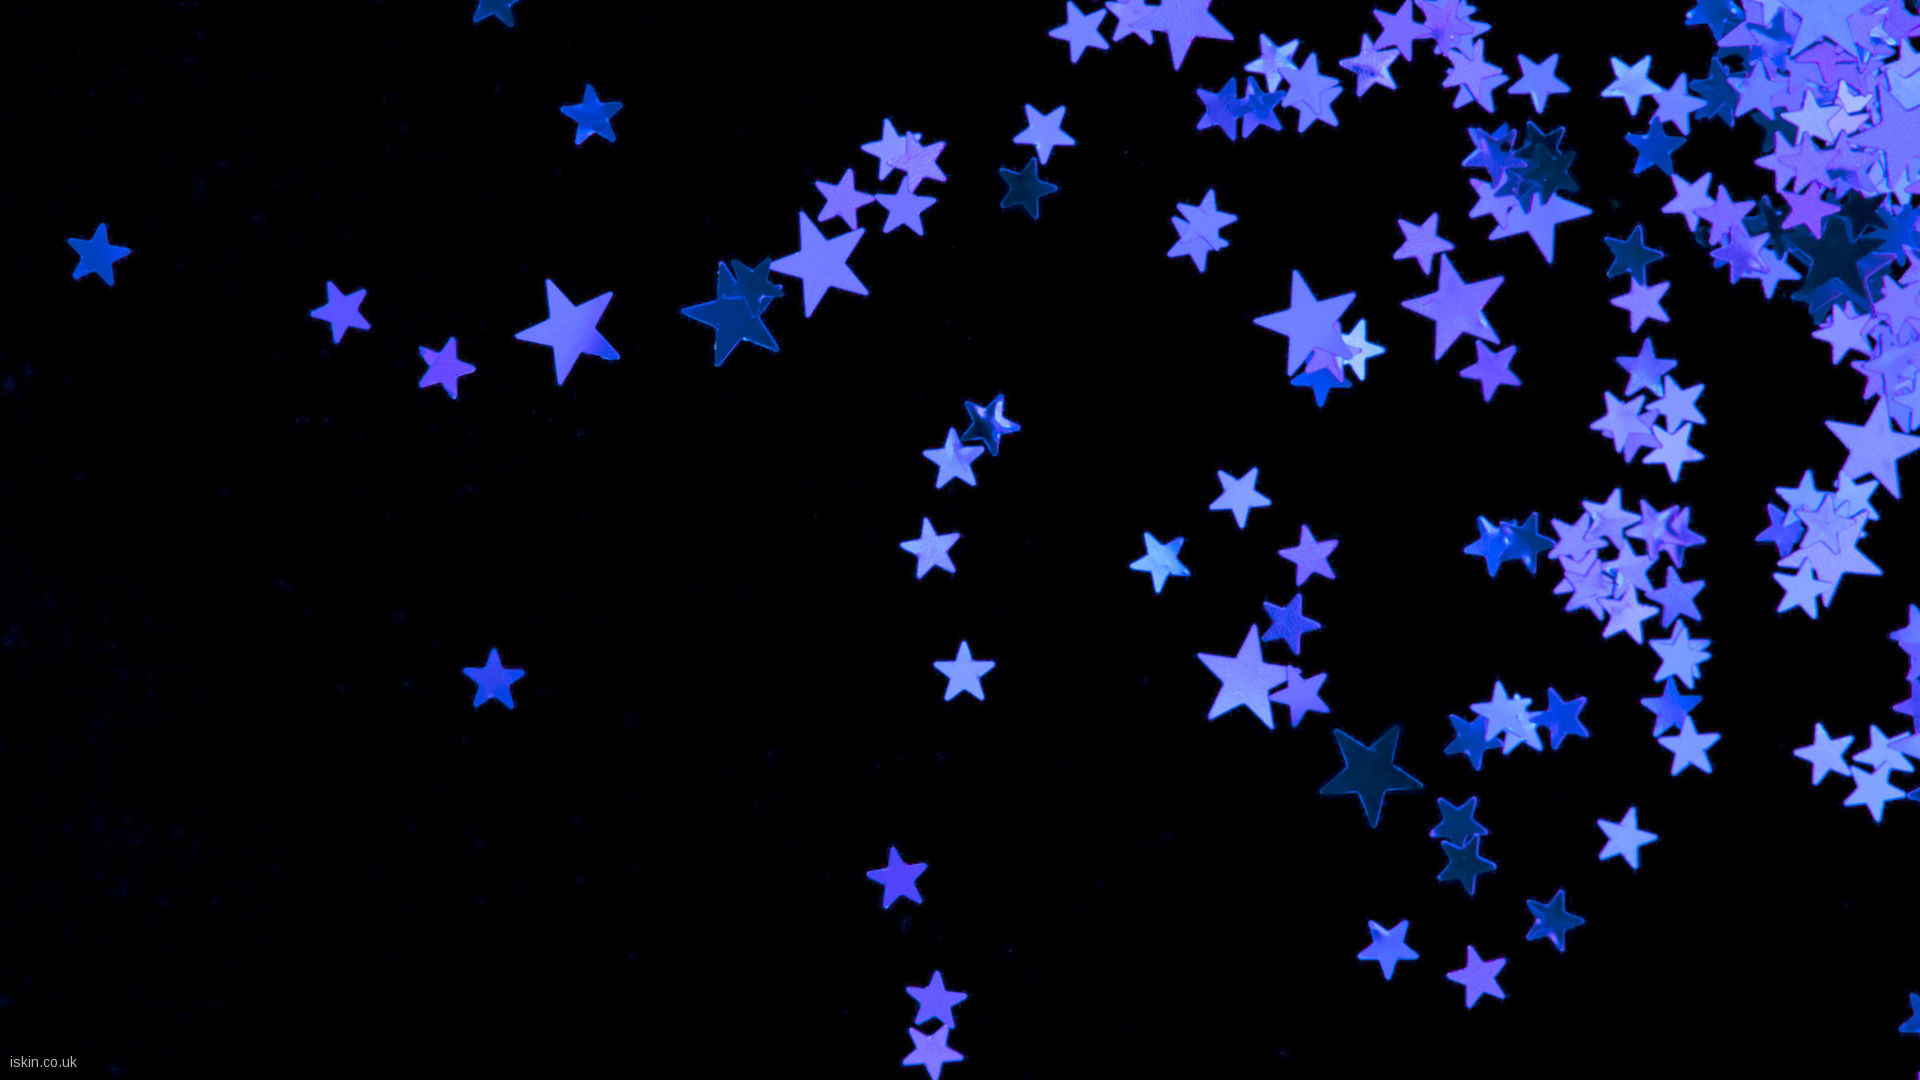 Black And Blue Star Background Images 6 HD Wallpapers